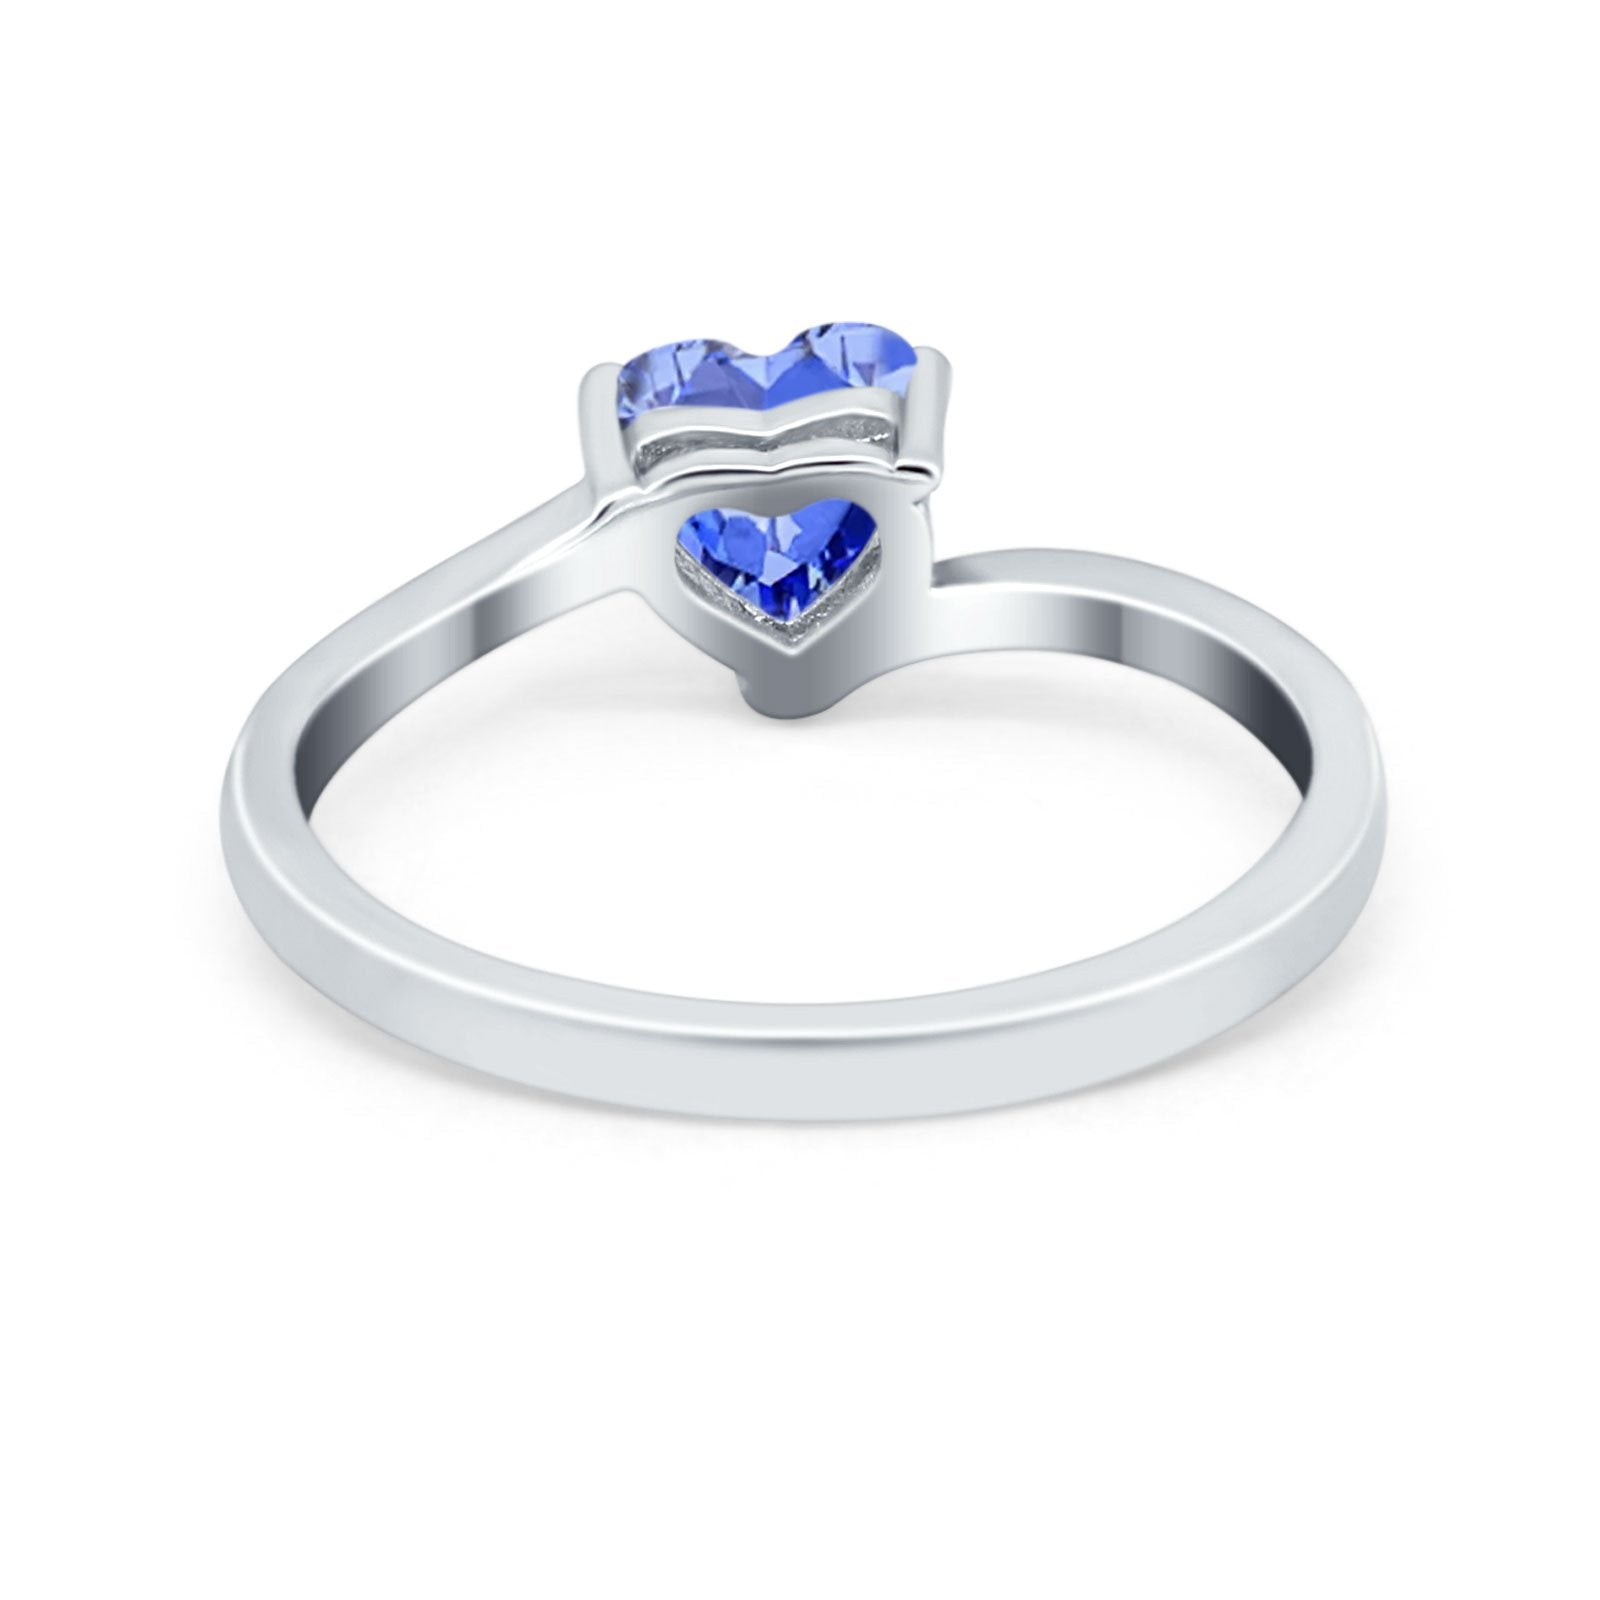 Swirl Wedding Heart Promise Ring Simulated Cubic Zirconia 925 Sterling Silver